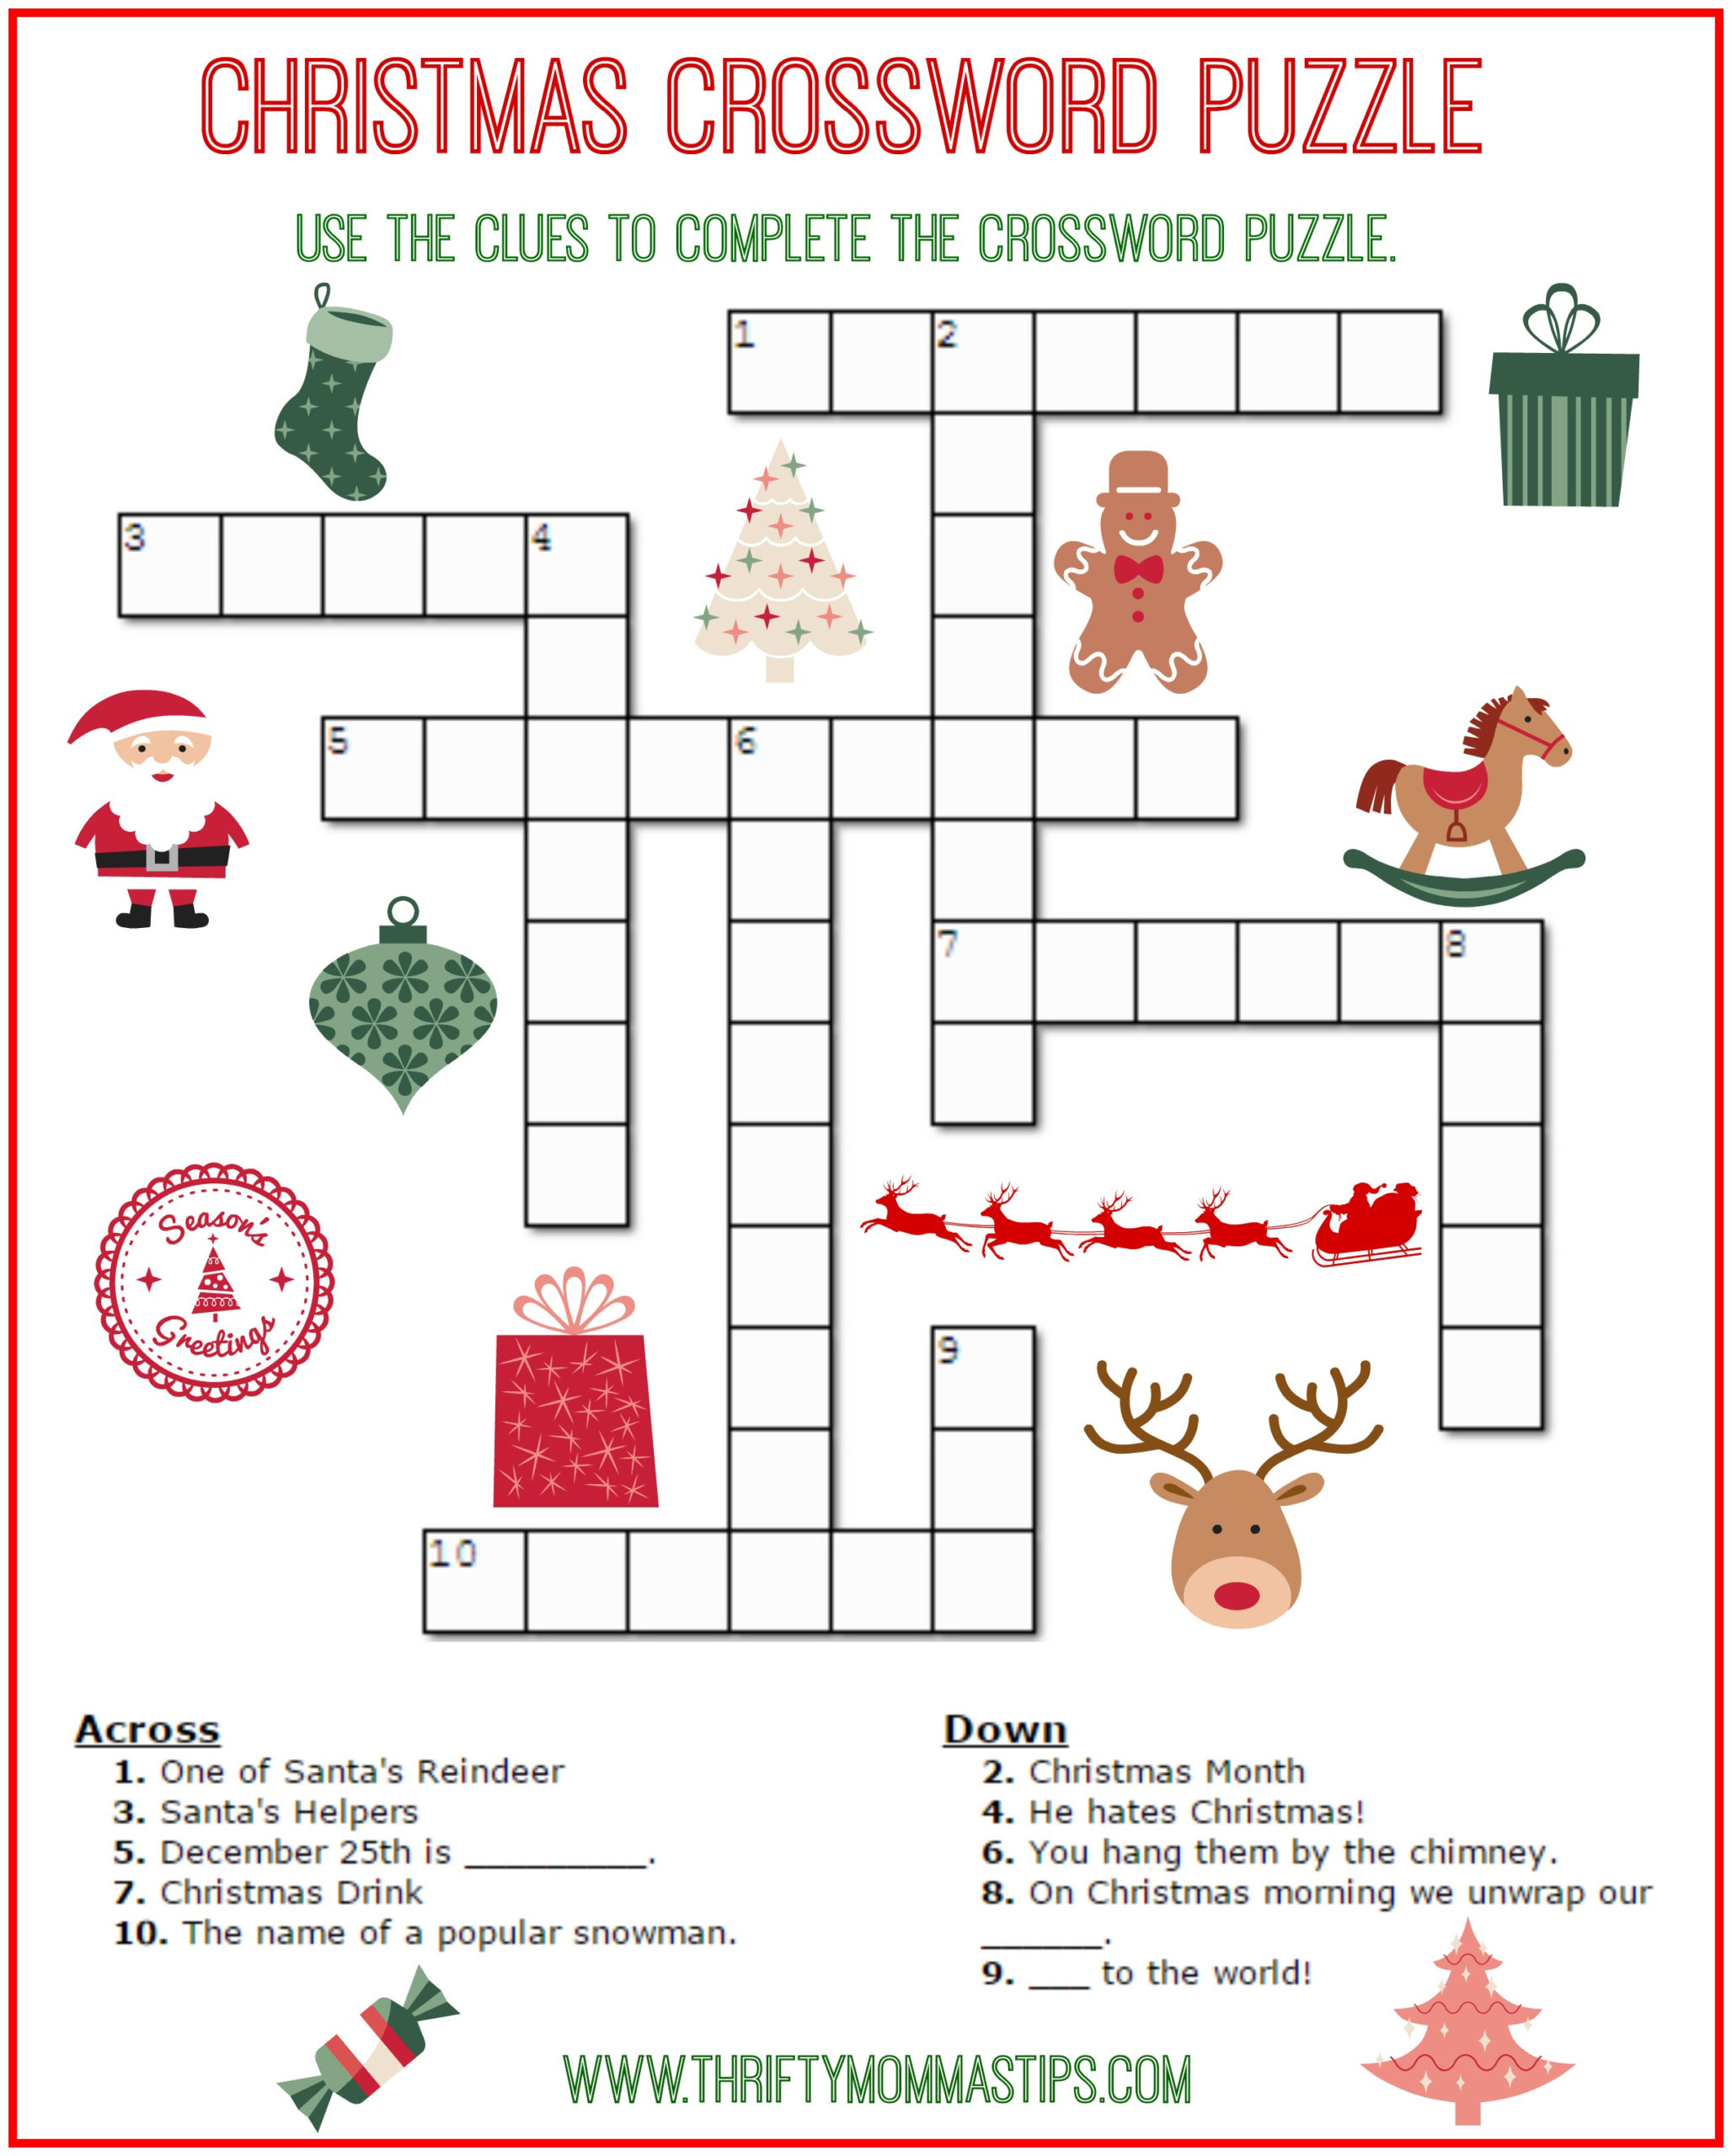 Christmas Crossword Puzzle Free Printable